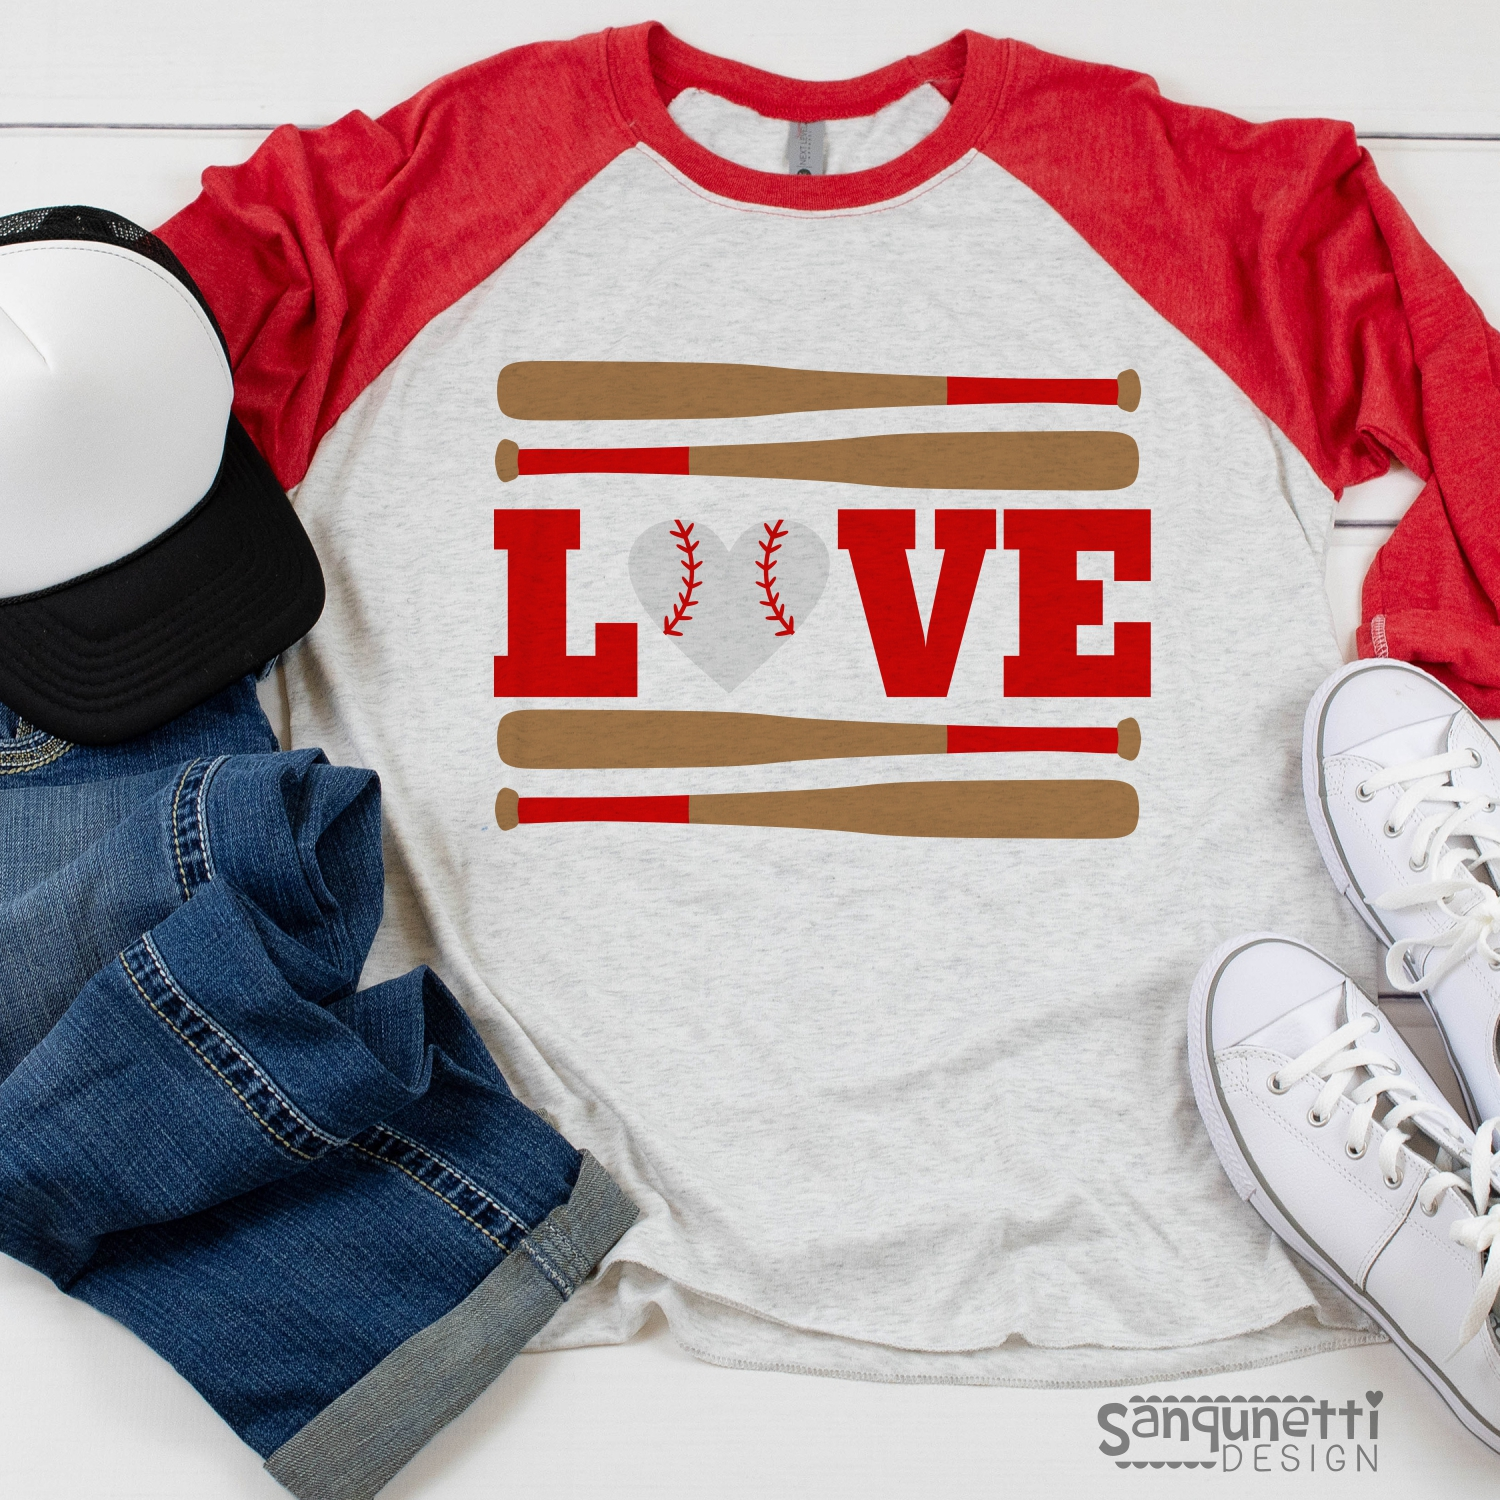 Love Baseball SVG file, spring sports cutting files example image 2